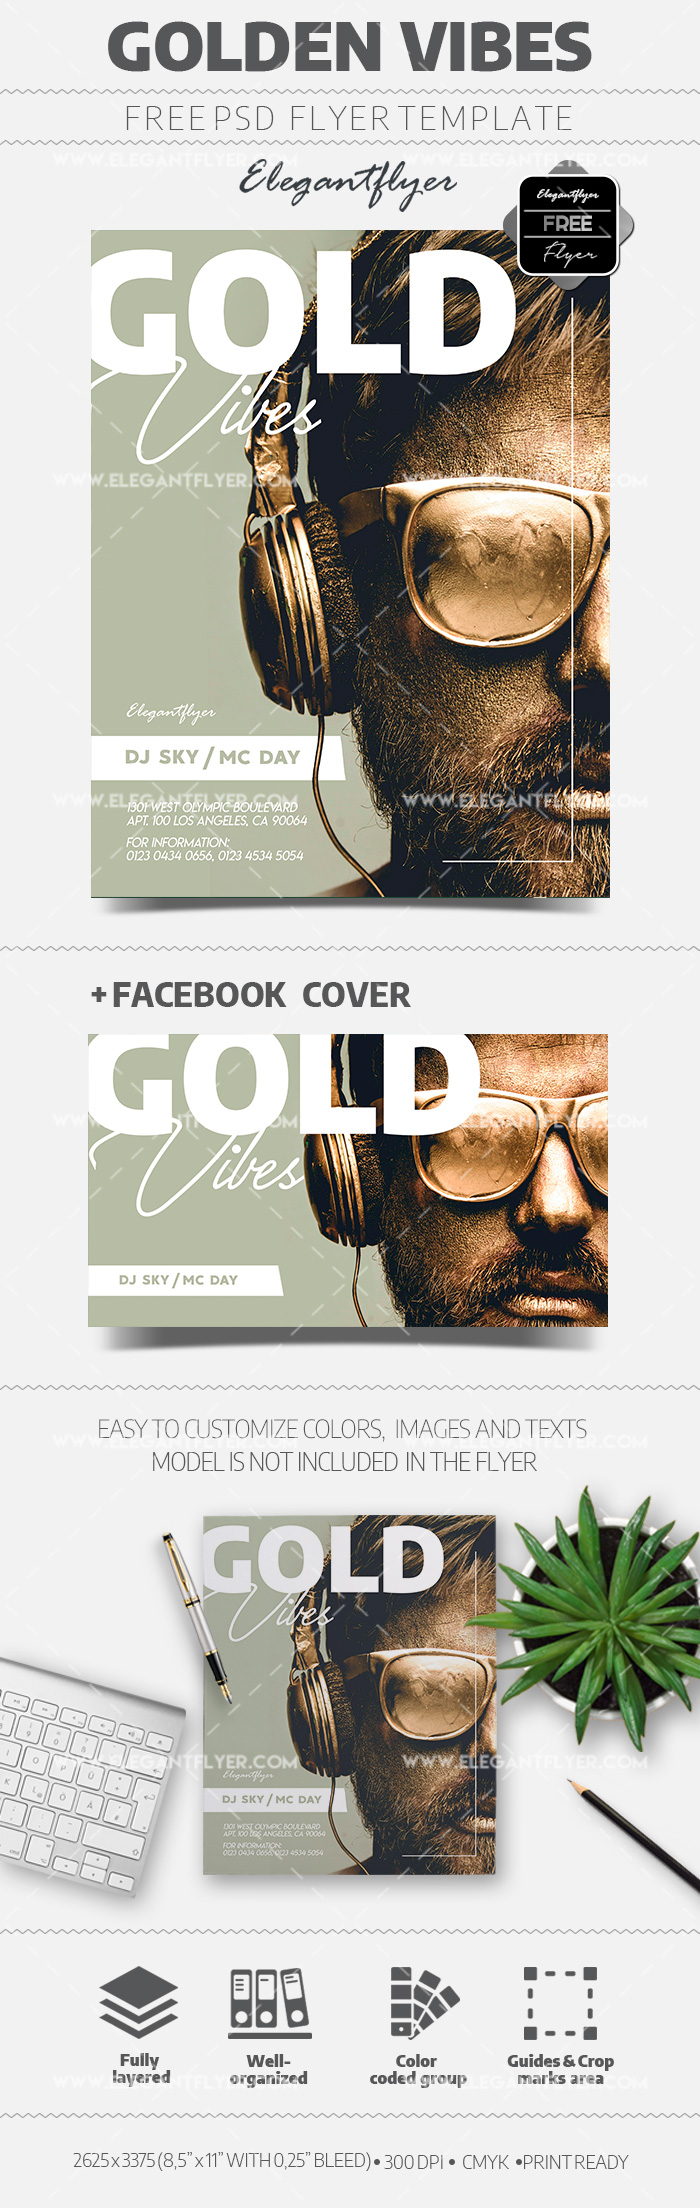 Golden Vibes Free PSD Flyer